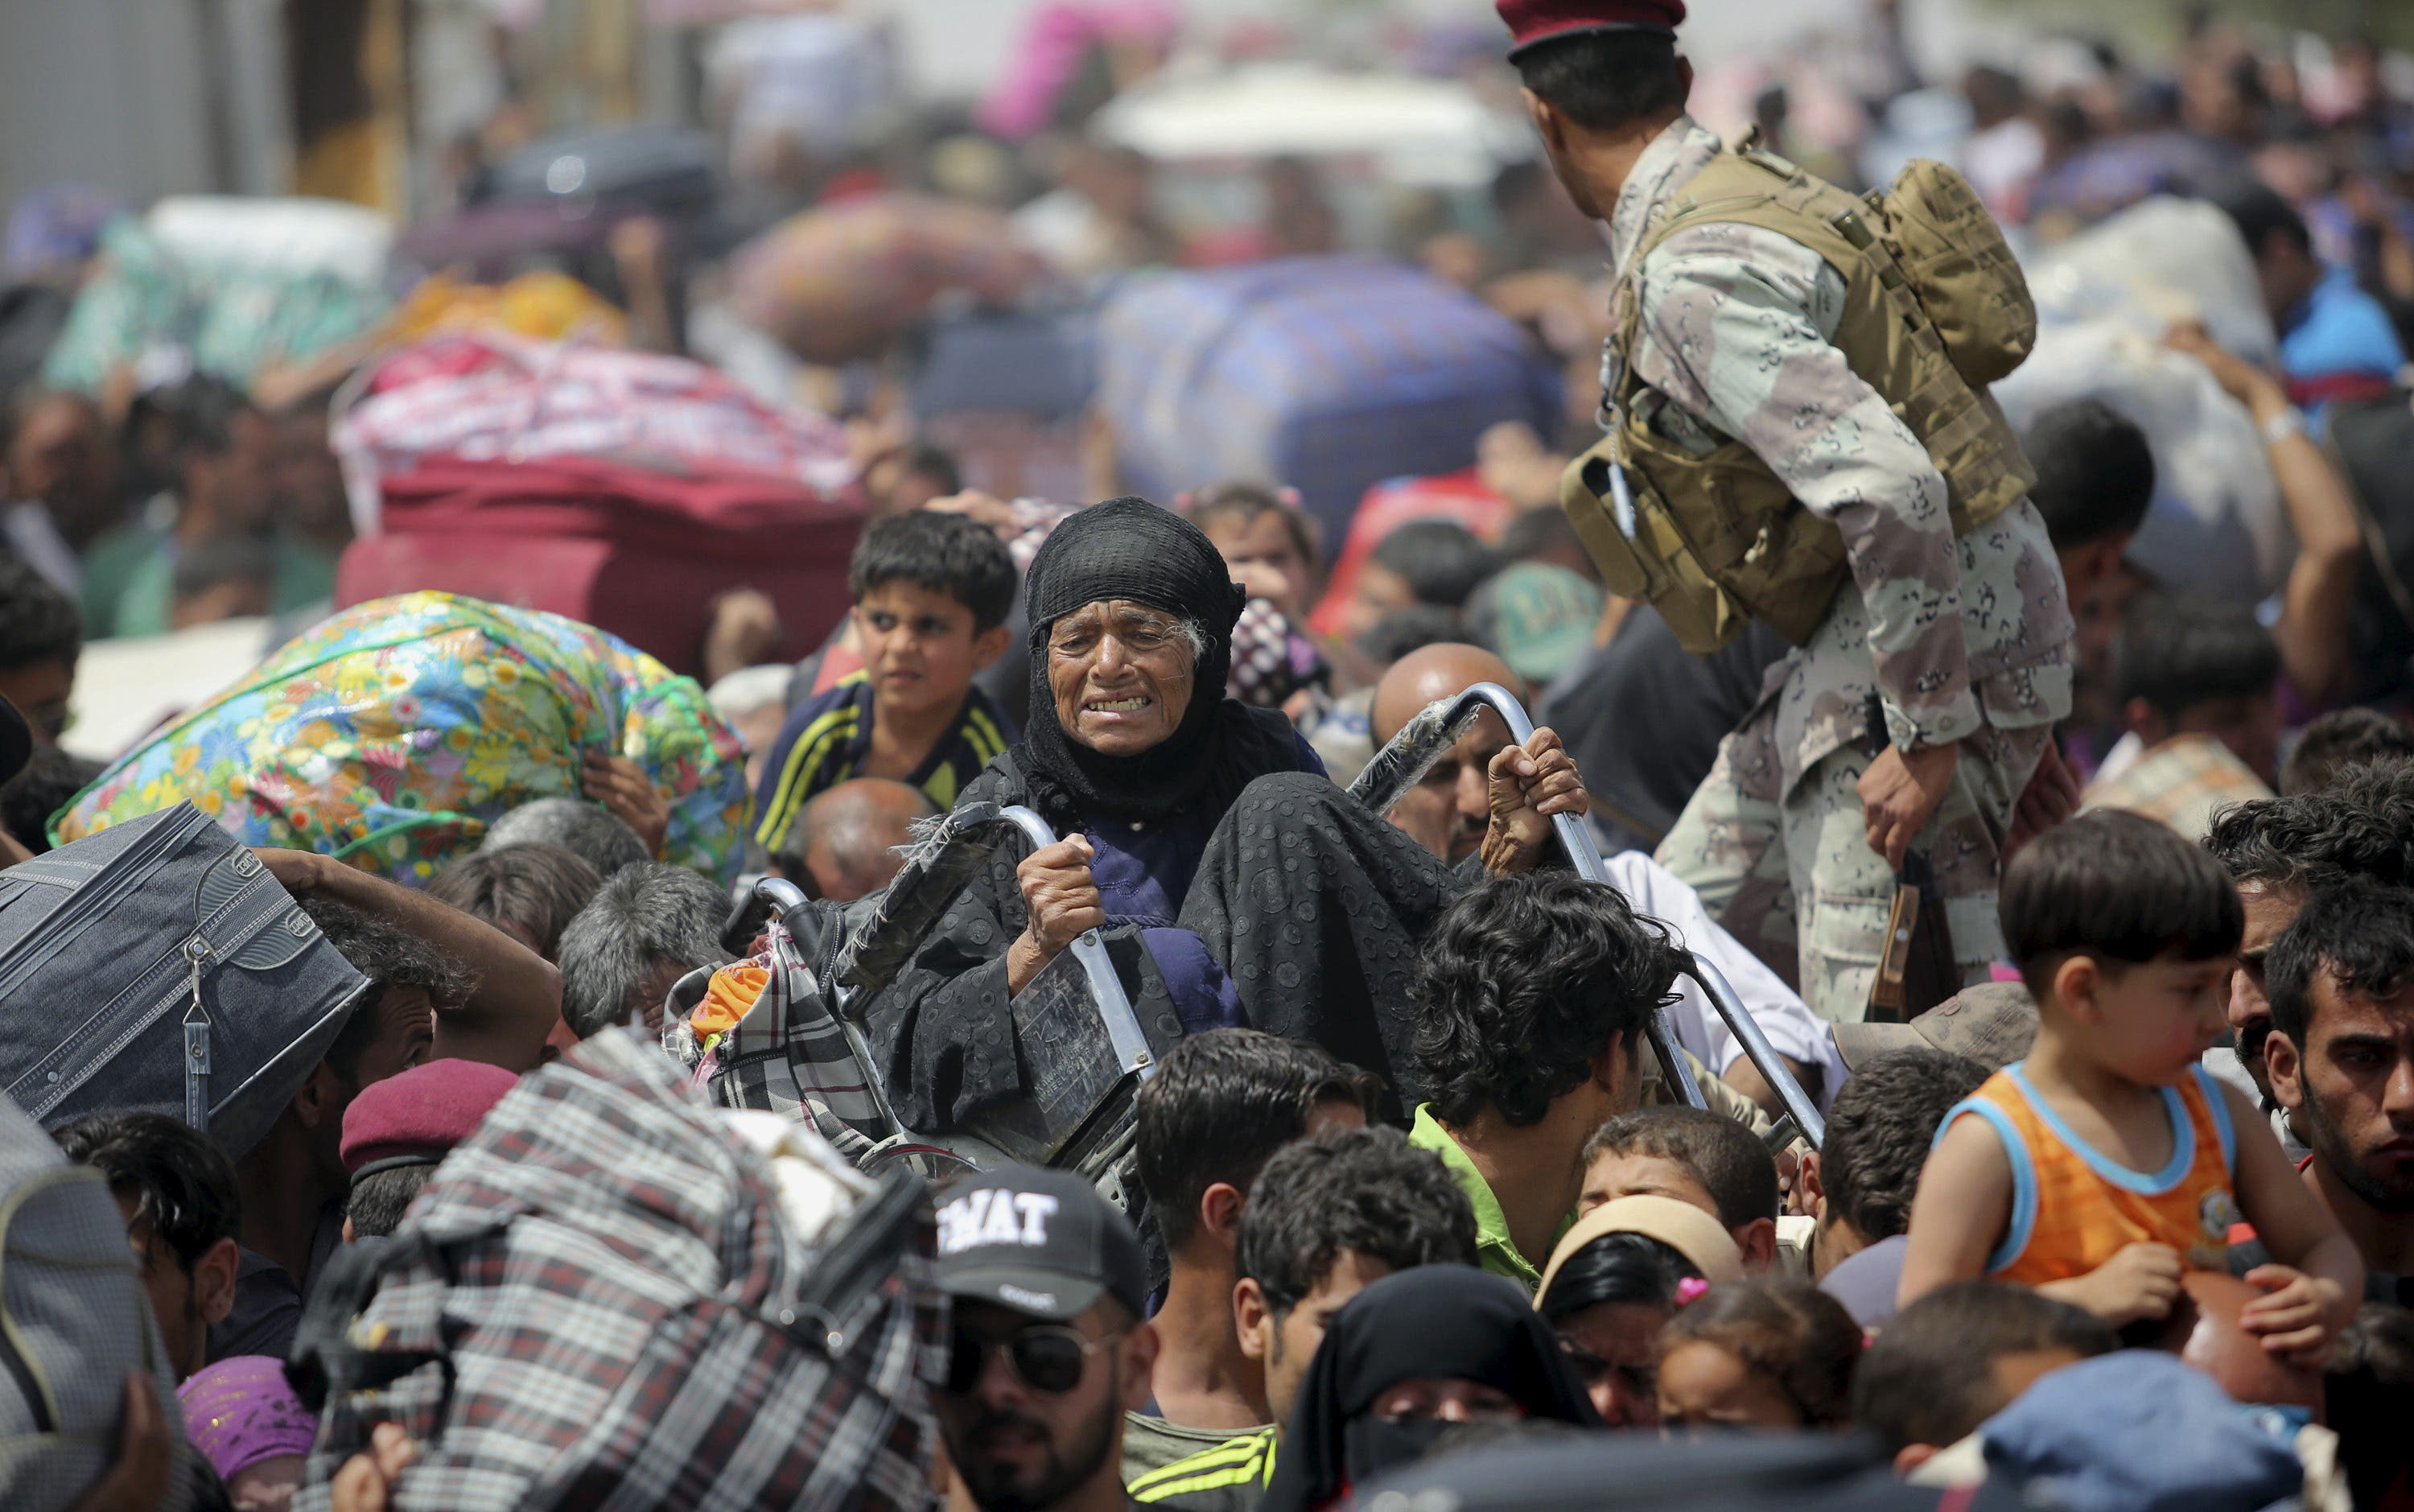 Displaced Iraqis arrive in Baghdad